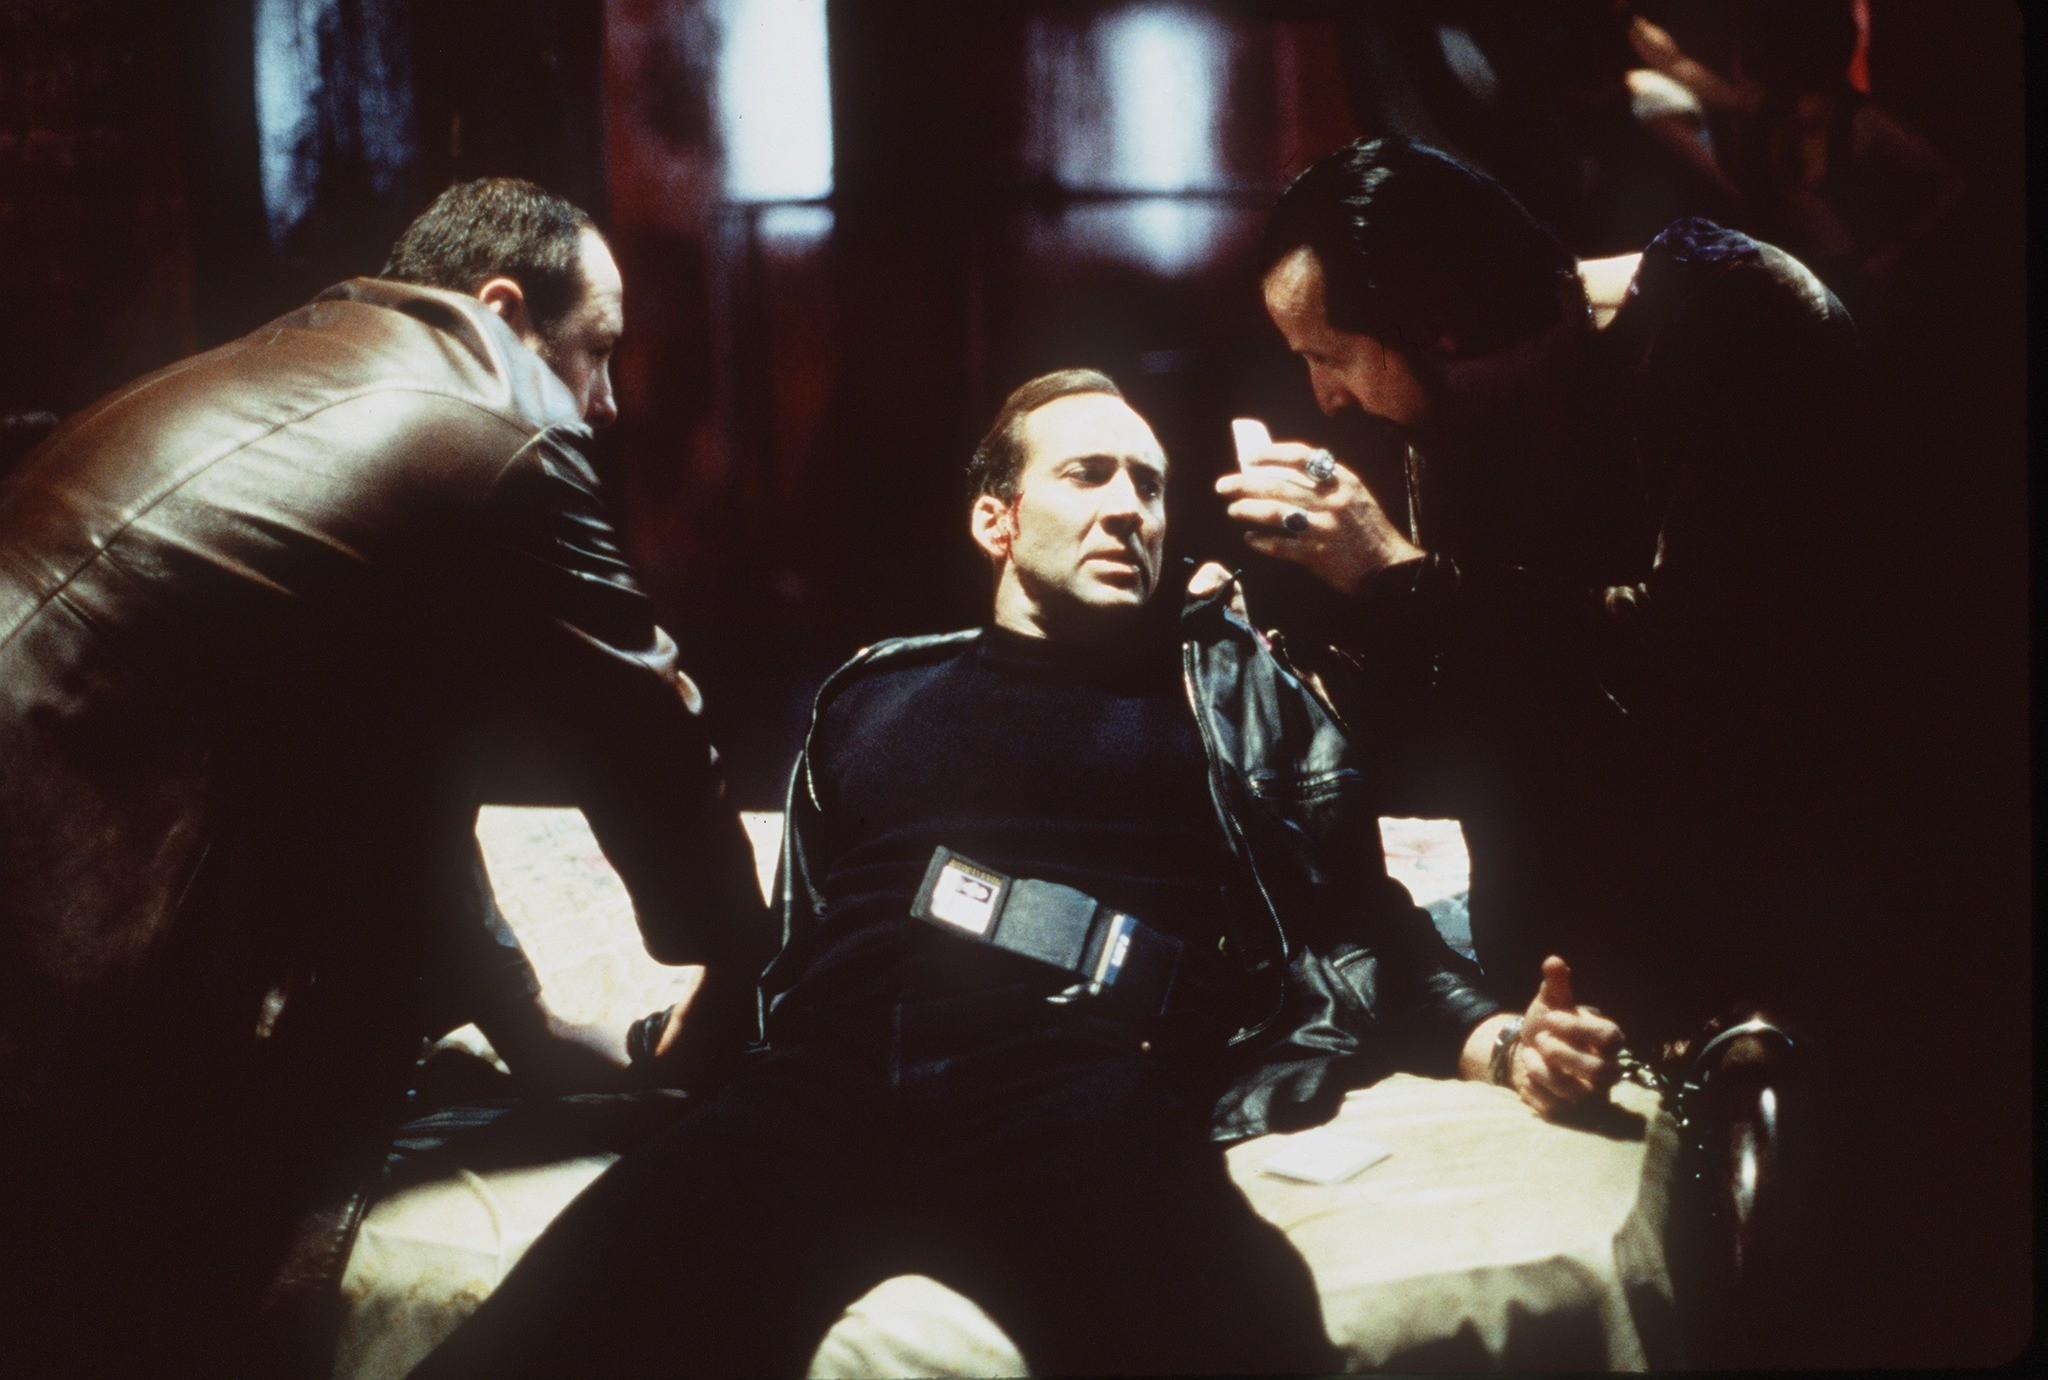 Nicolas Cage (c) is held down by James Gandolfini (l) and Peter Stormare (r) in 8MM (1999)